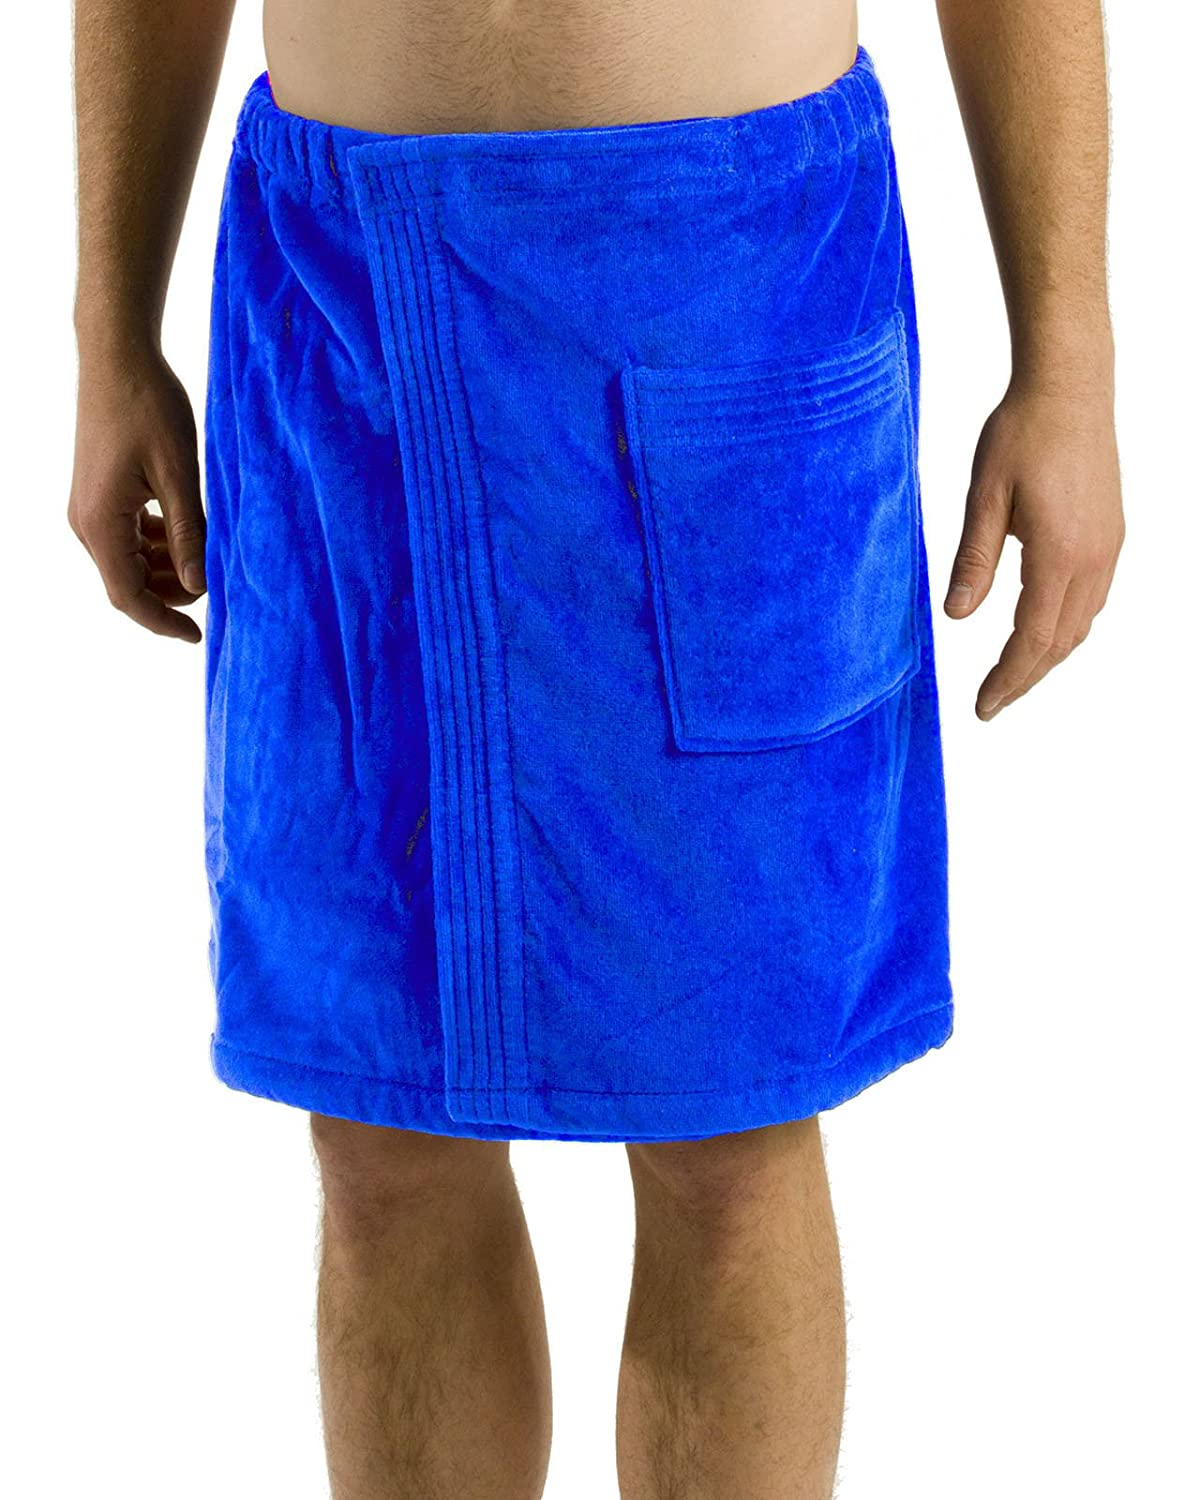 robesale Bamboo Cotton Mens Spa Wrap, White, S/M